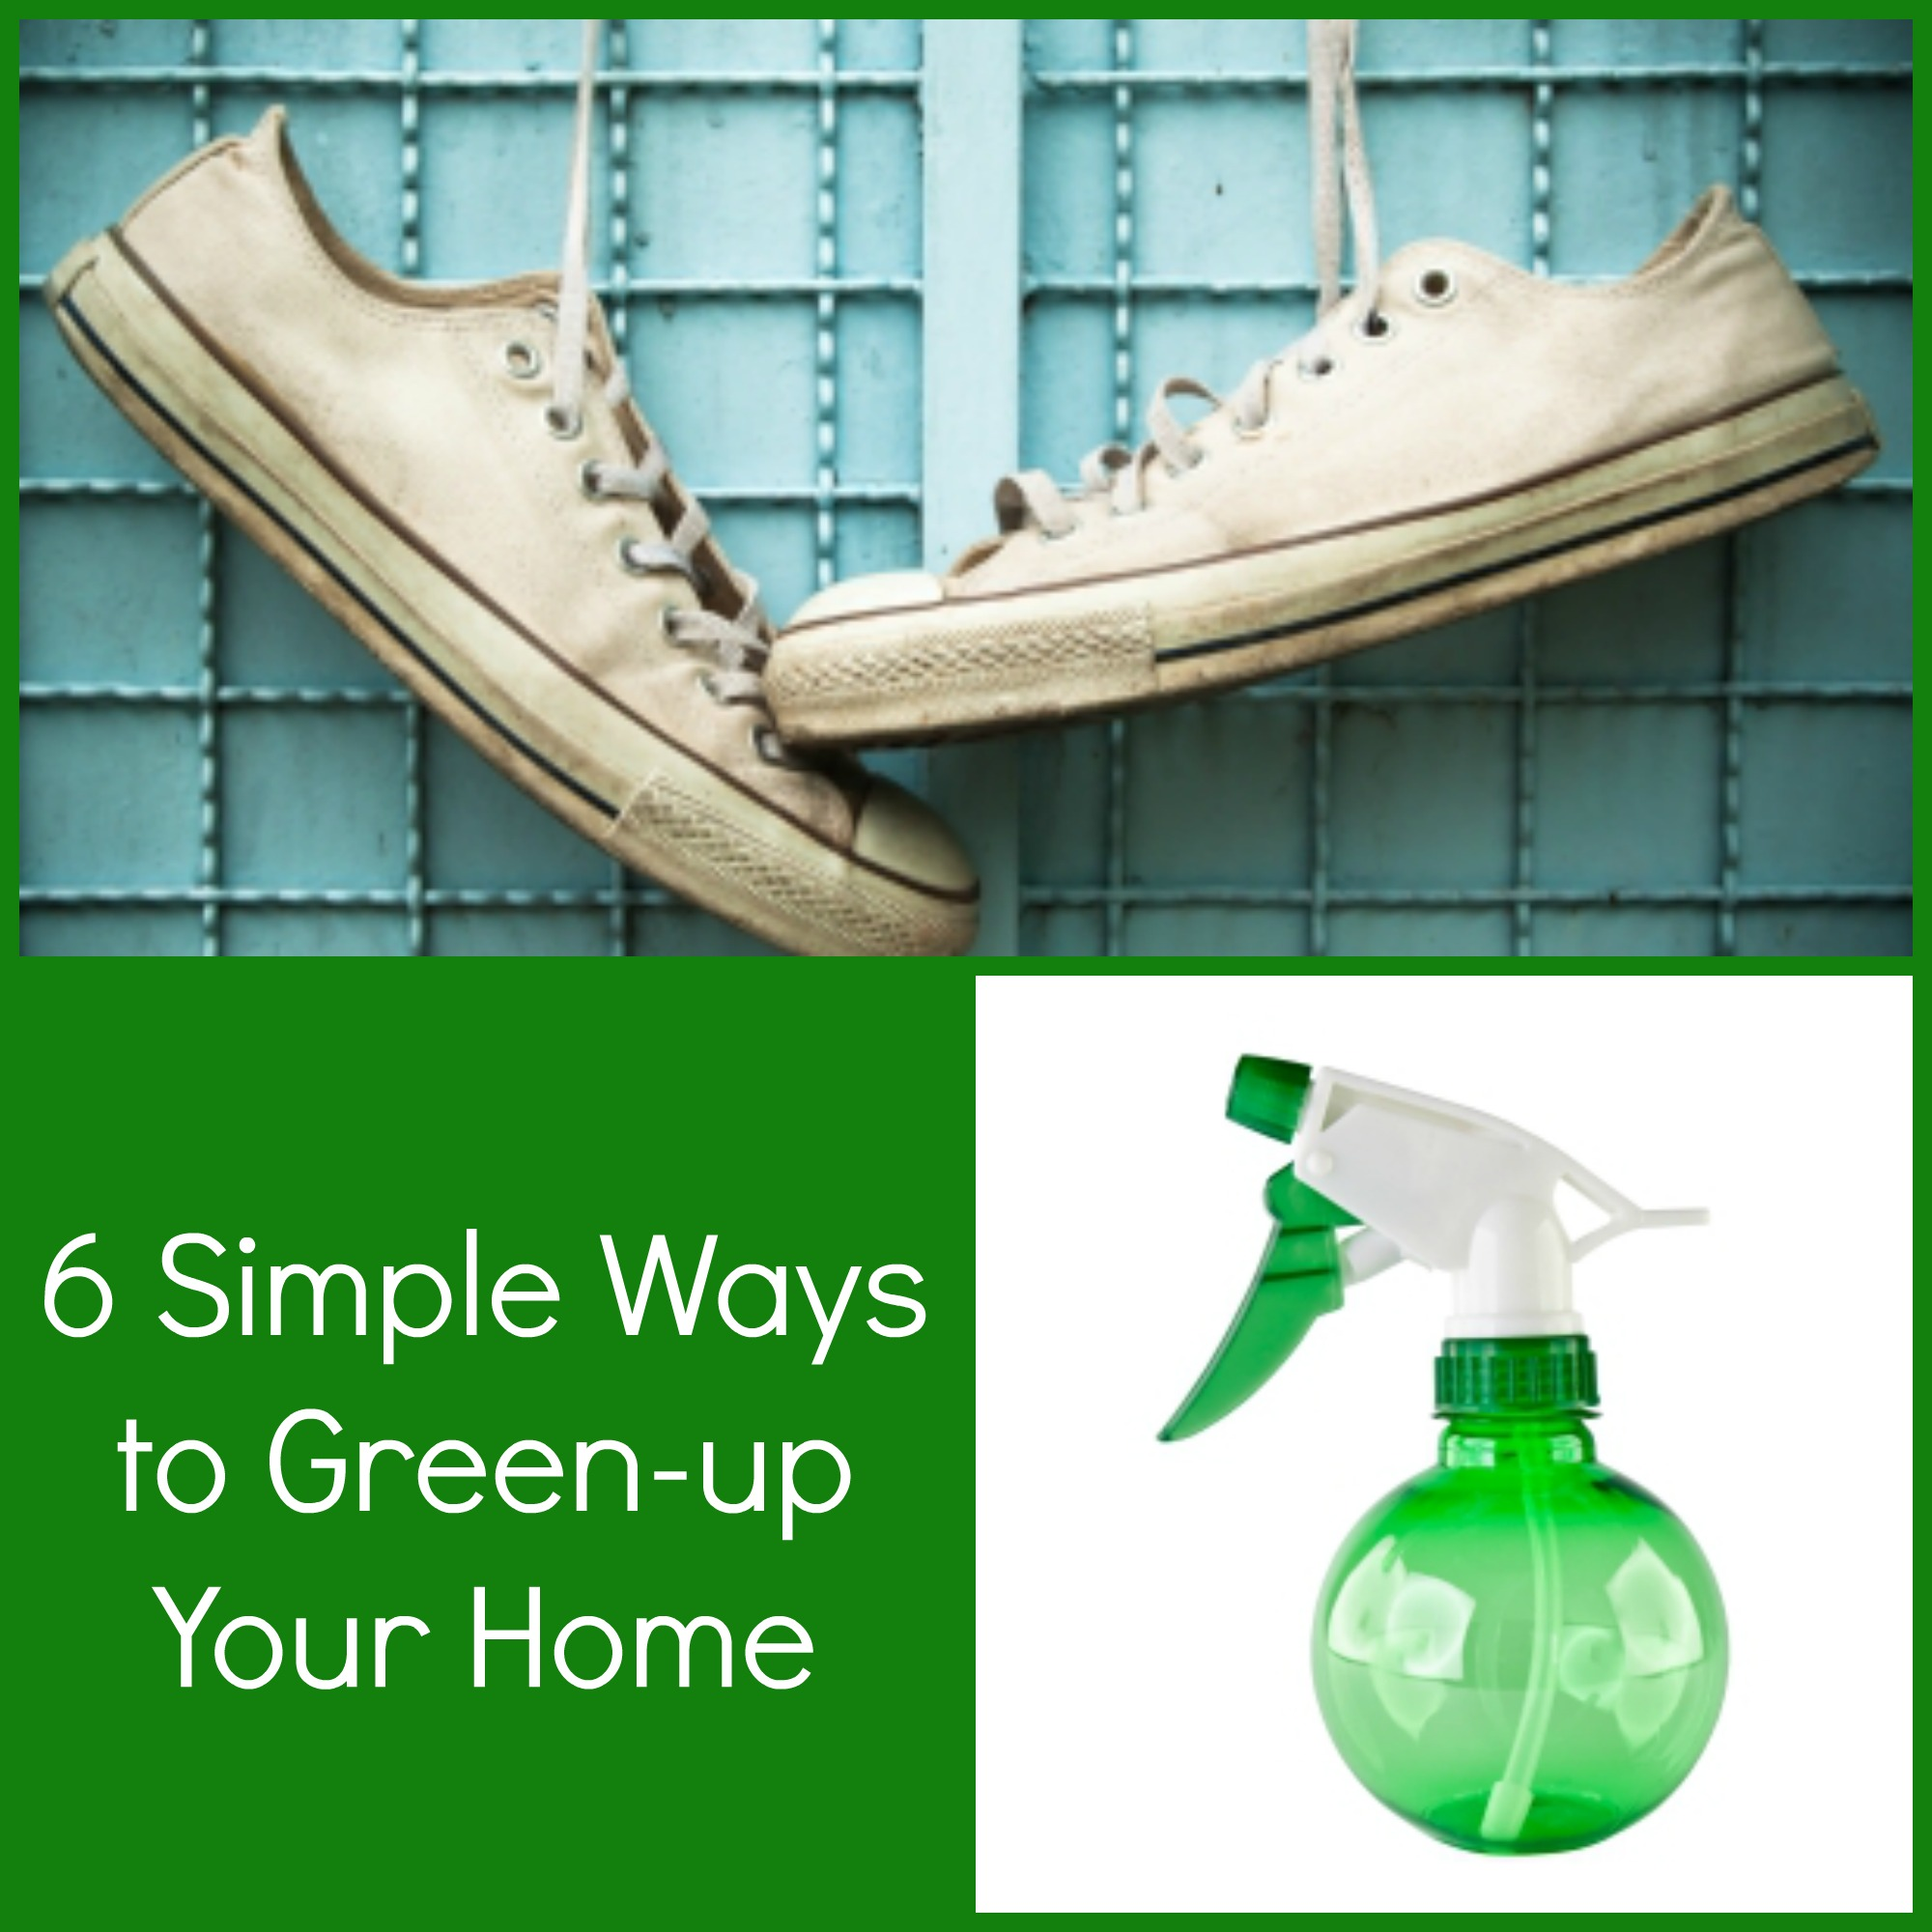 6 simple ways to green up your home makes scents natural spa linemakes scents natural spa line. Black Bedroom Furniture Sets. Home Design Ideas